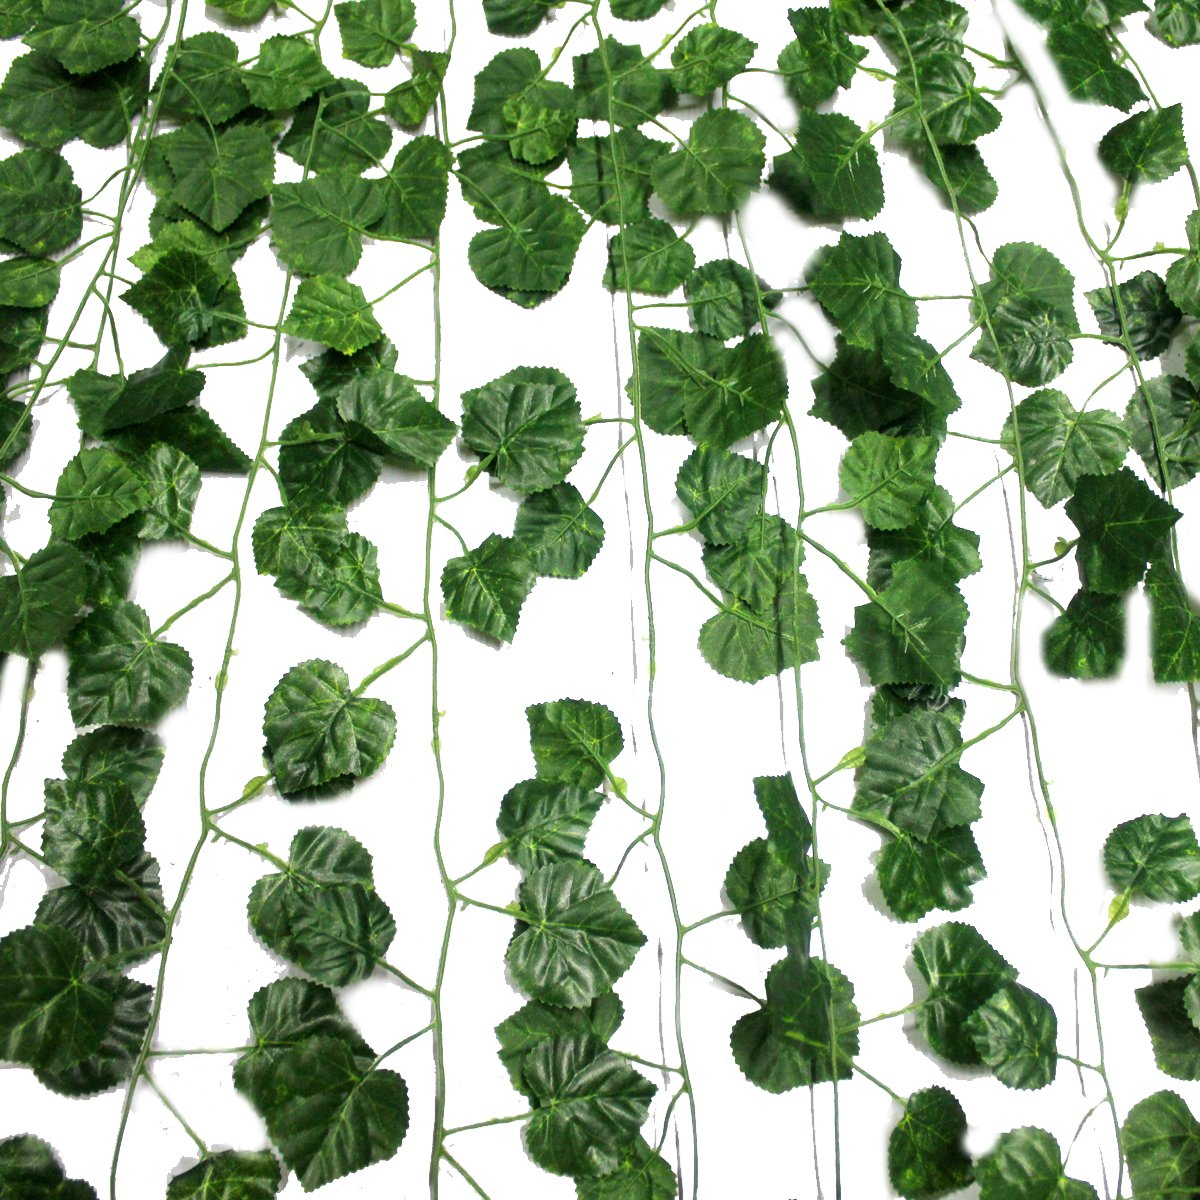 12 Pack Each 82 inch Artificial Greenery Fake Hanging Vine Plants Leaf Grape Leaves Garland Hanging for Wedding Party Garden Outdoor Greenery Office Wall Decoration GPARK ZSG-Flower002-002